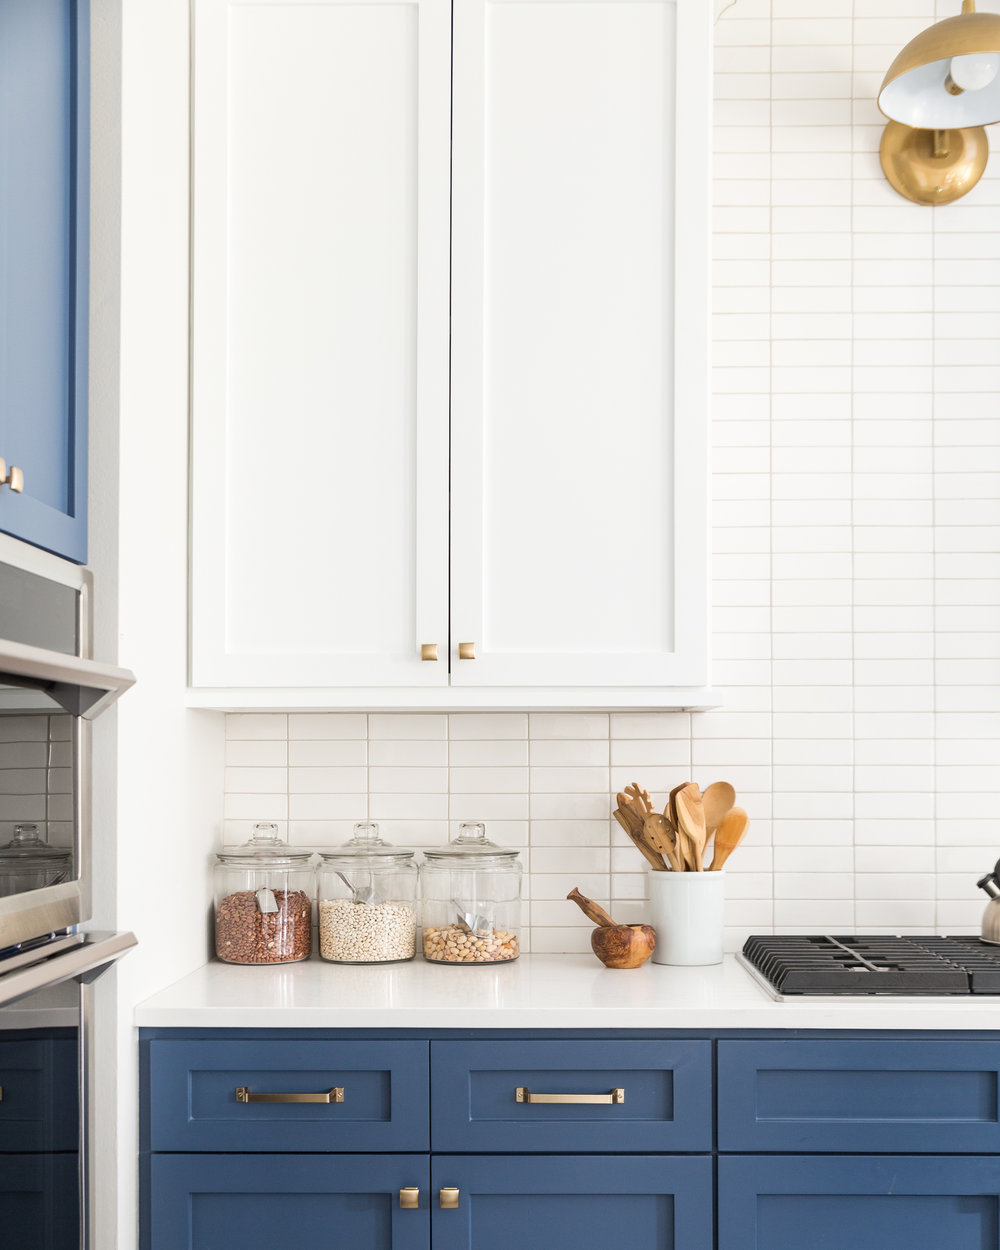 DESIGN TRICK - Kitchen with upper cabinets blended to match backsplash | Designer: Carla Aston, Photographer: Colleen Scott